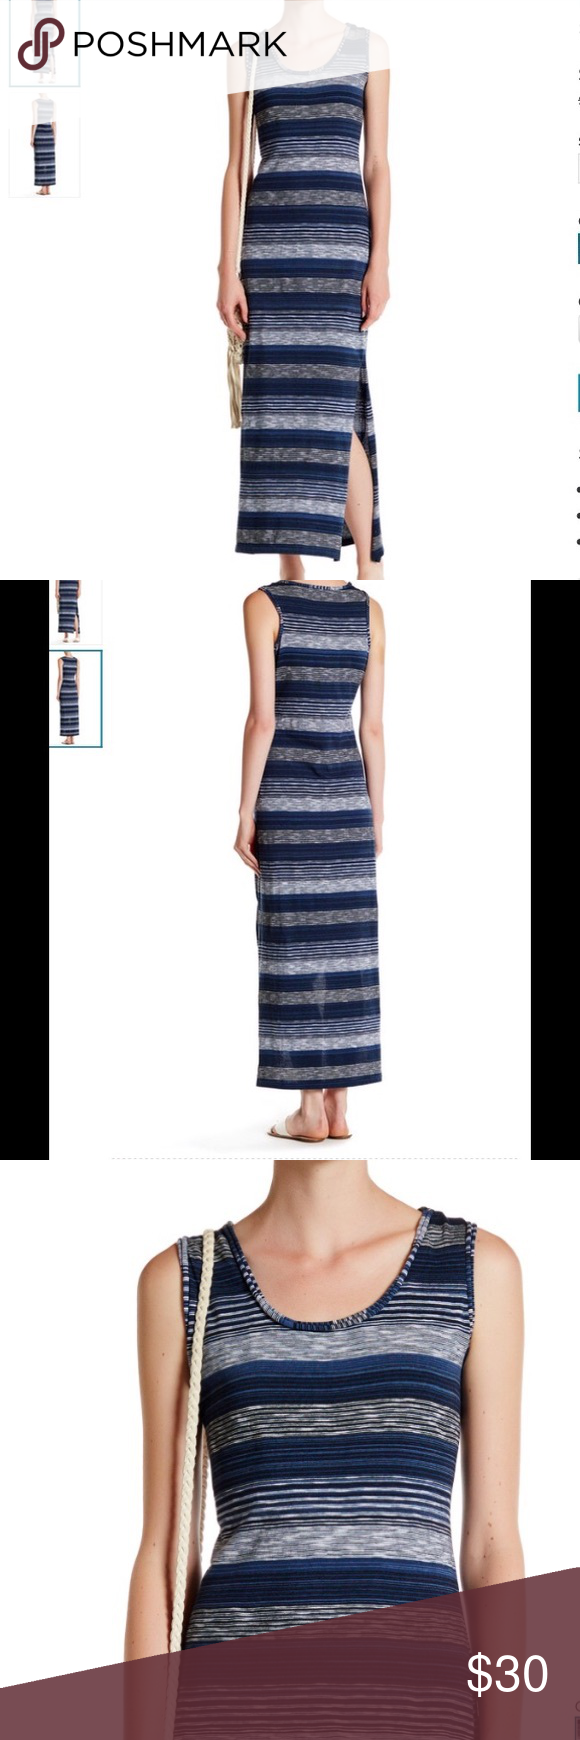 """MAX STUDIO STRIPED MAXI DRESS NO TRADES - Scoop neck - Sleeveless - Allover stripes - Side slits - Approx. 55"""" length 100% cotton Machine wash cold.  style fits true to size. Model's stats for sizing: - Height: 5'10.5"""" - Bust: 31"""" - Waist: 23.5"""" - Hips: 34"""" Model is wearing size S. Max Studio Dresses Maxi"""